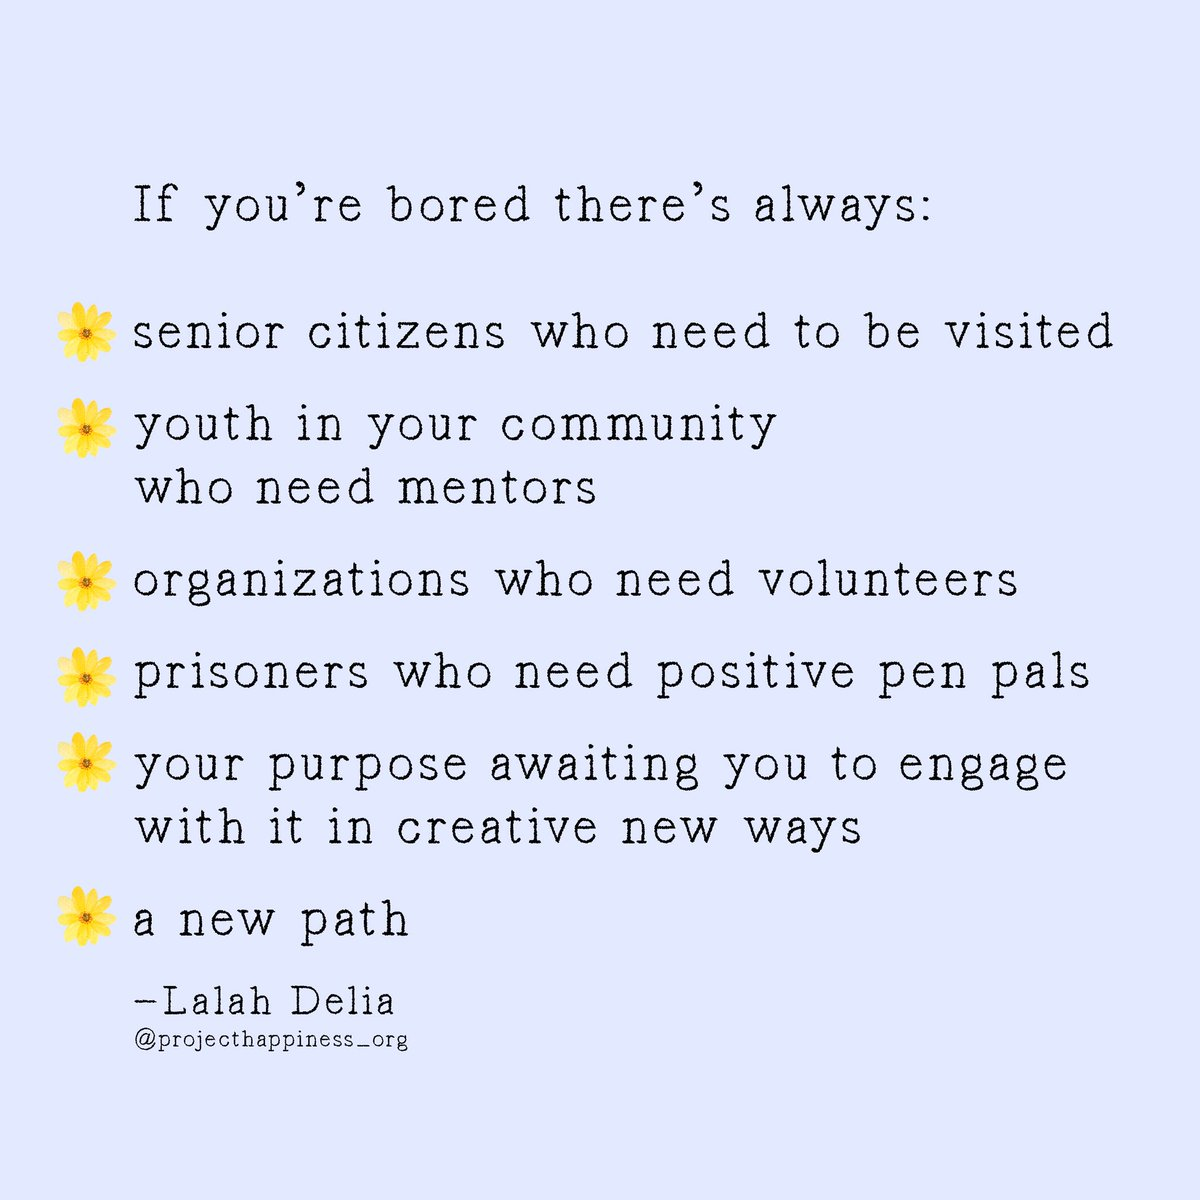 """A great list of action items to celebrate this #ThoughtfulThursday !  """"Release boredom and trade it in for purpose."""" Wise words from our friend @LalahDelia  #projecthappiness #givingback #dogood #kindness<br>http://pic.twitter.com/THIzzC0UAC"""